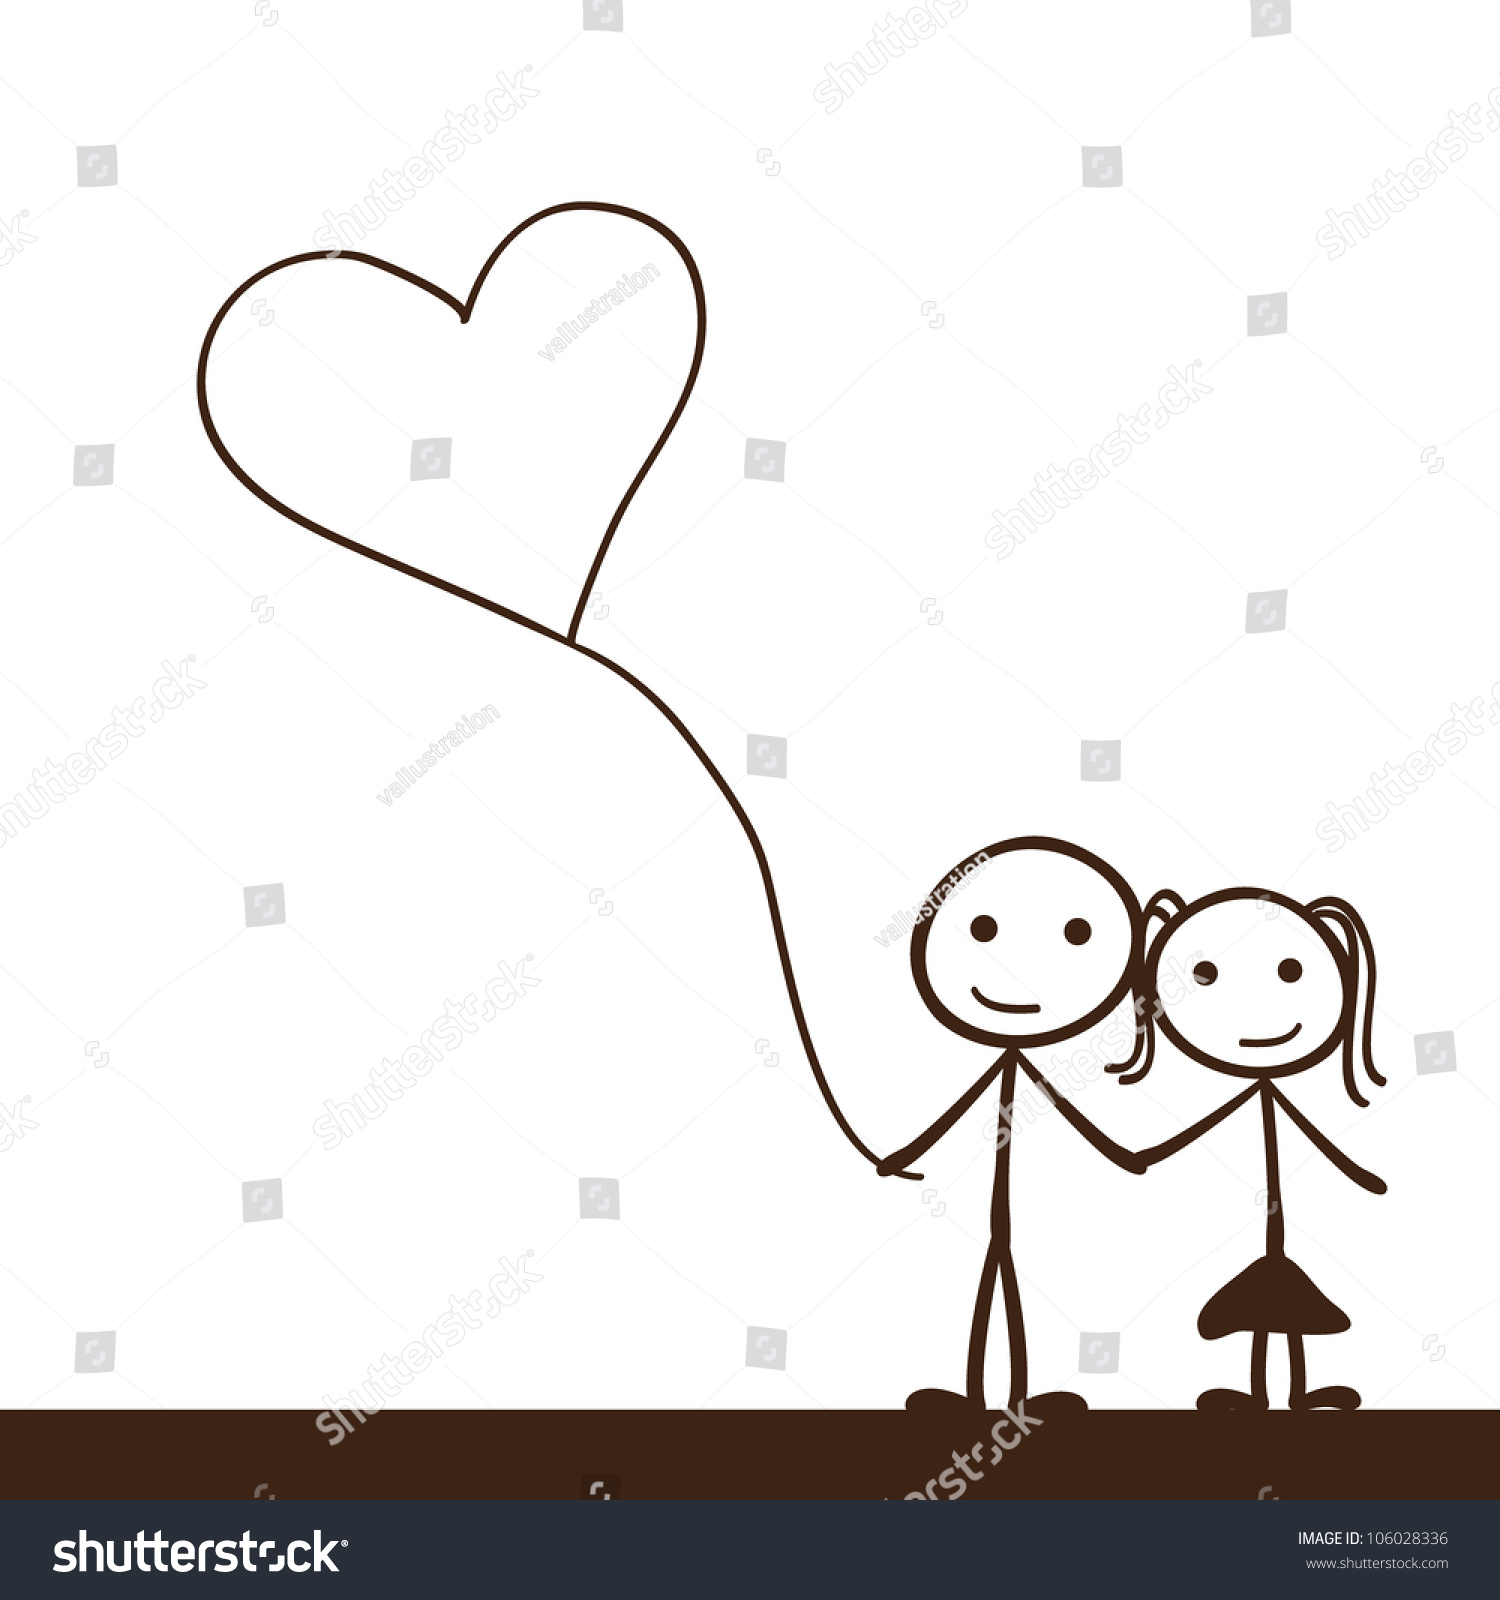 simple stick figure heart balloon background stock vector